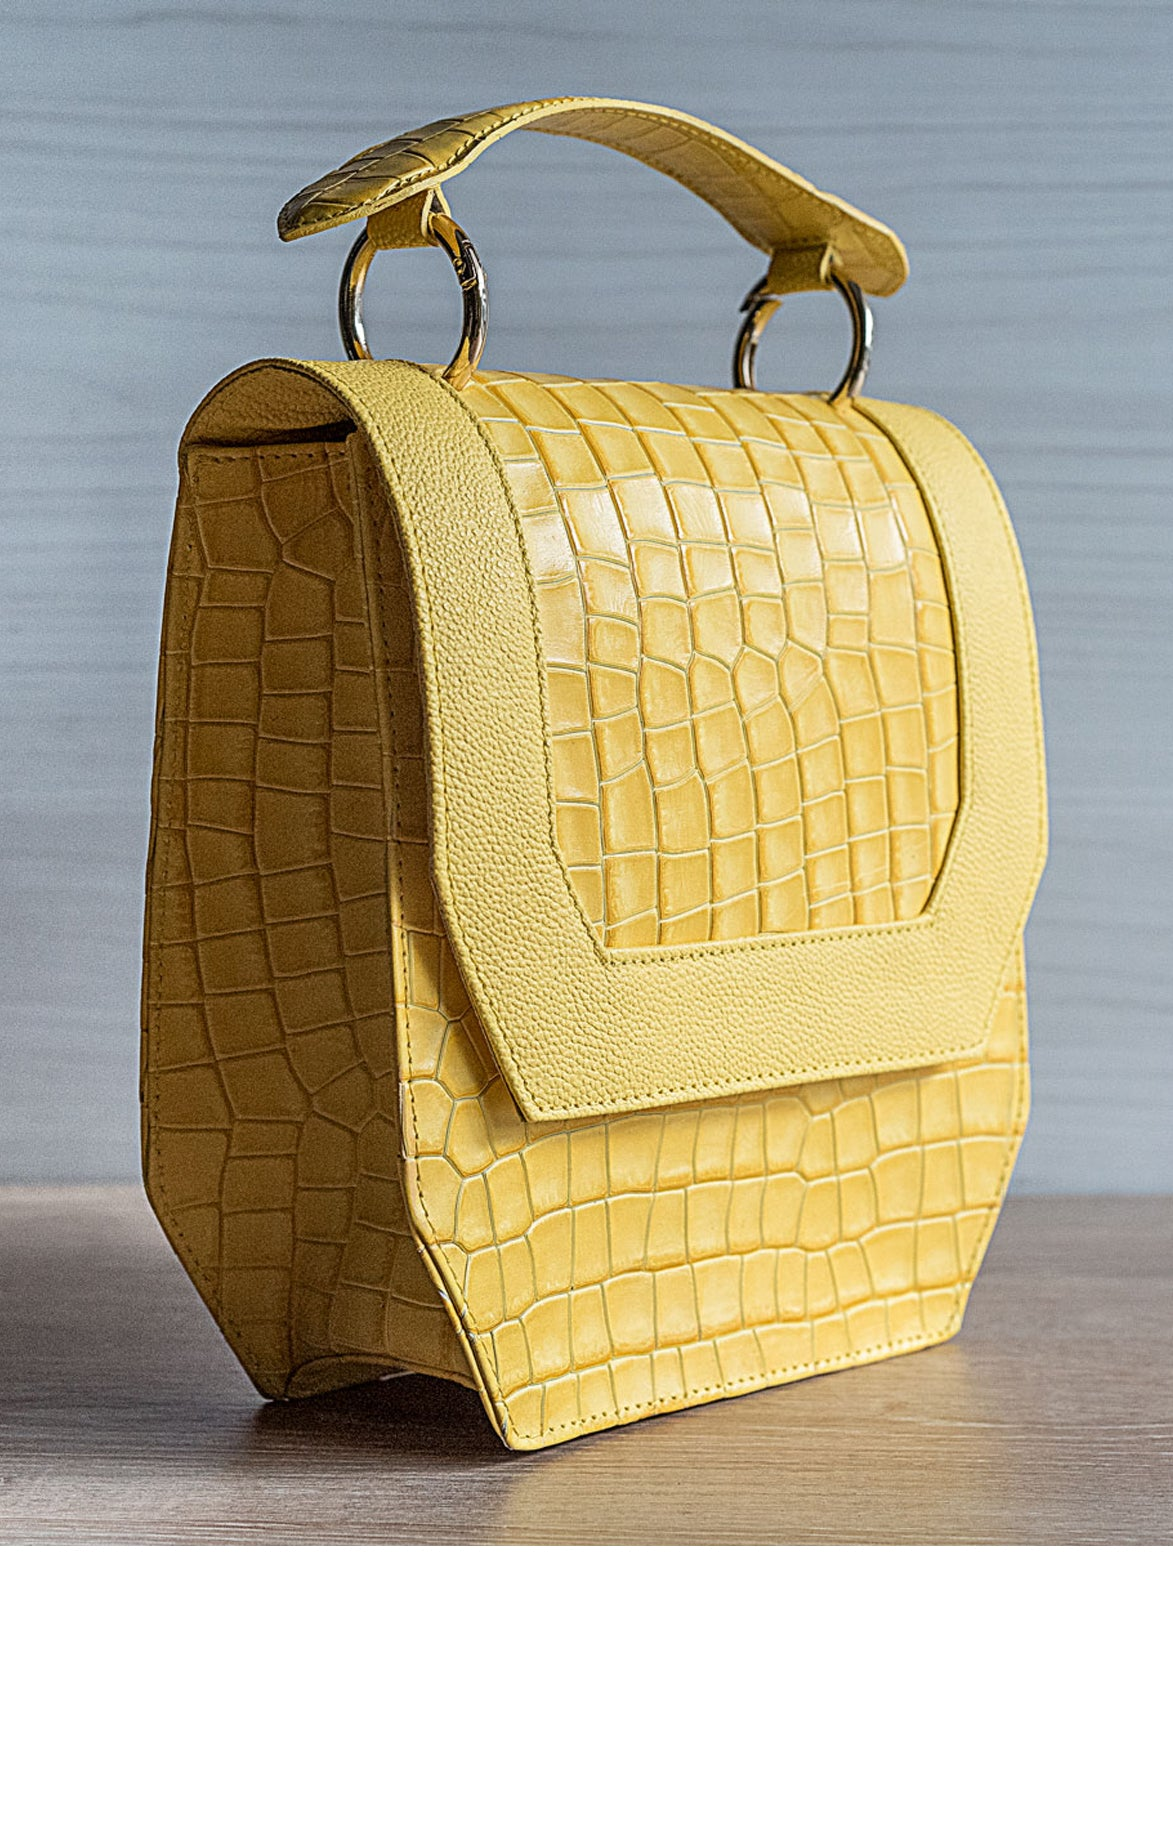 Modena Yellow Handbag